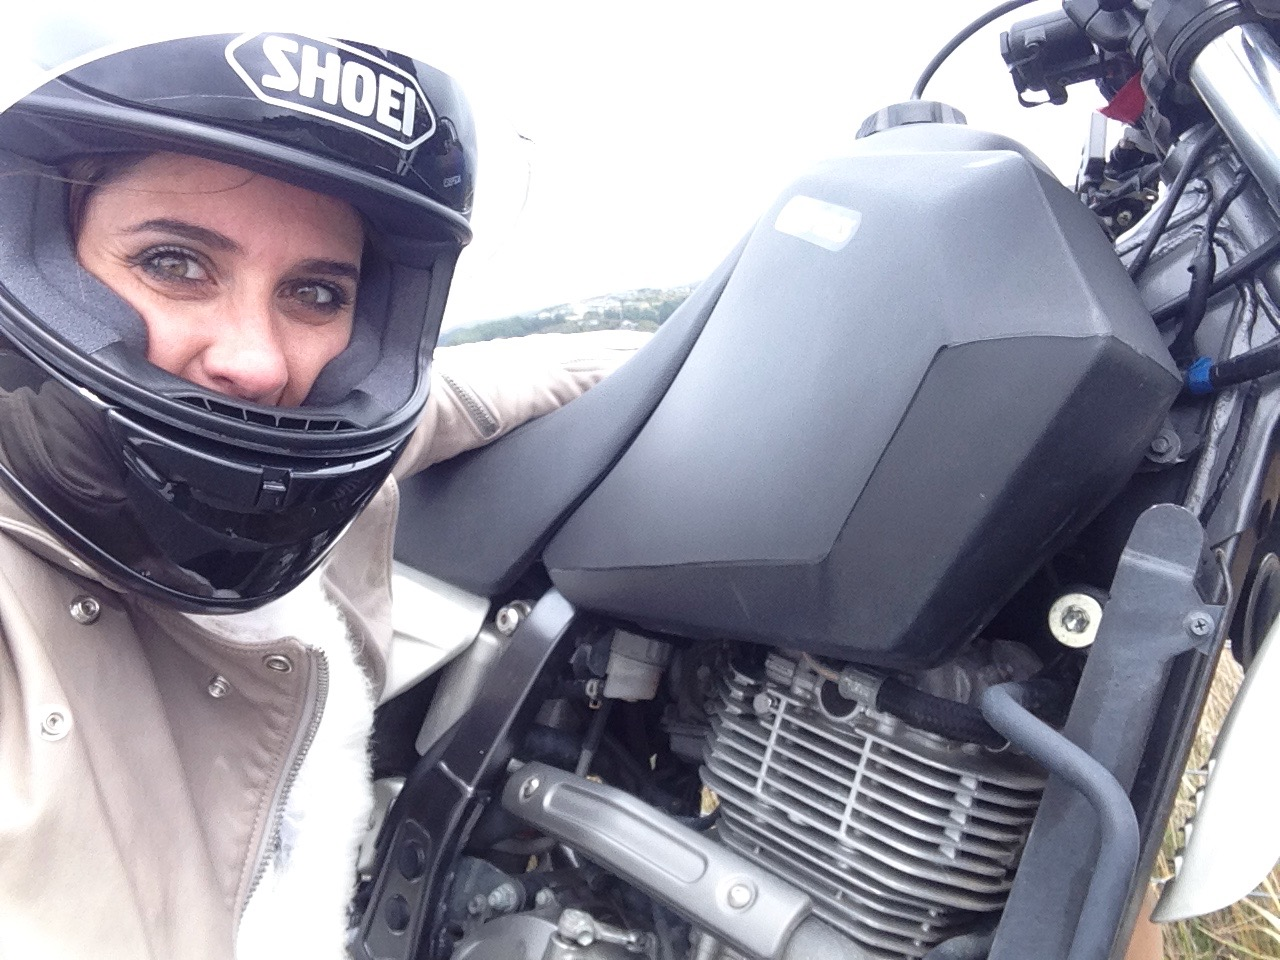 Road Trip on the Suzuki DR650